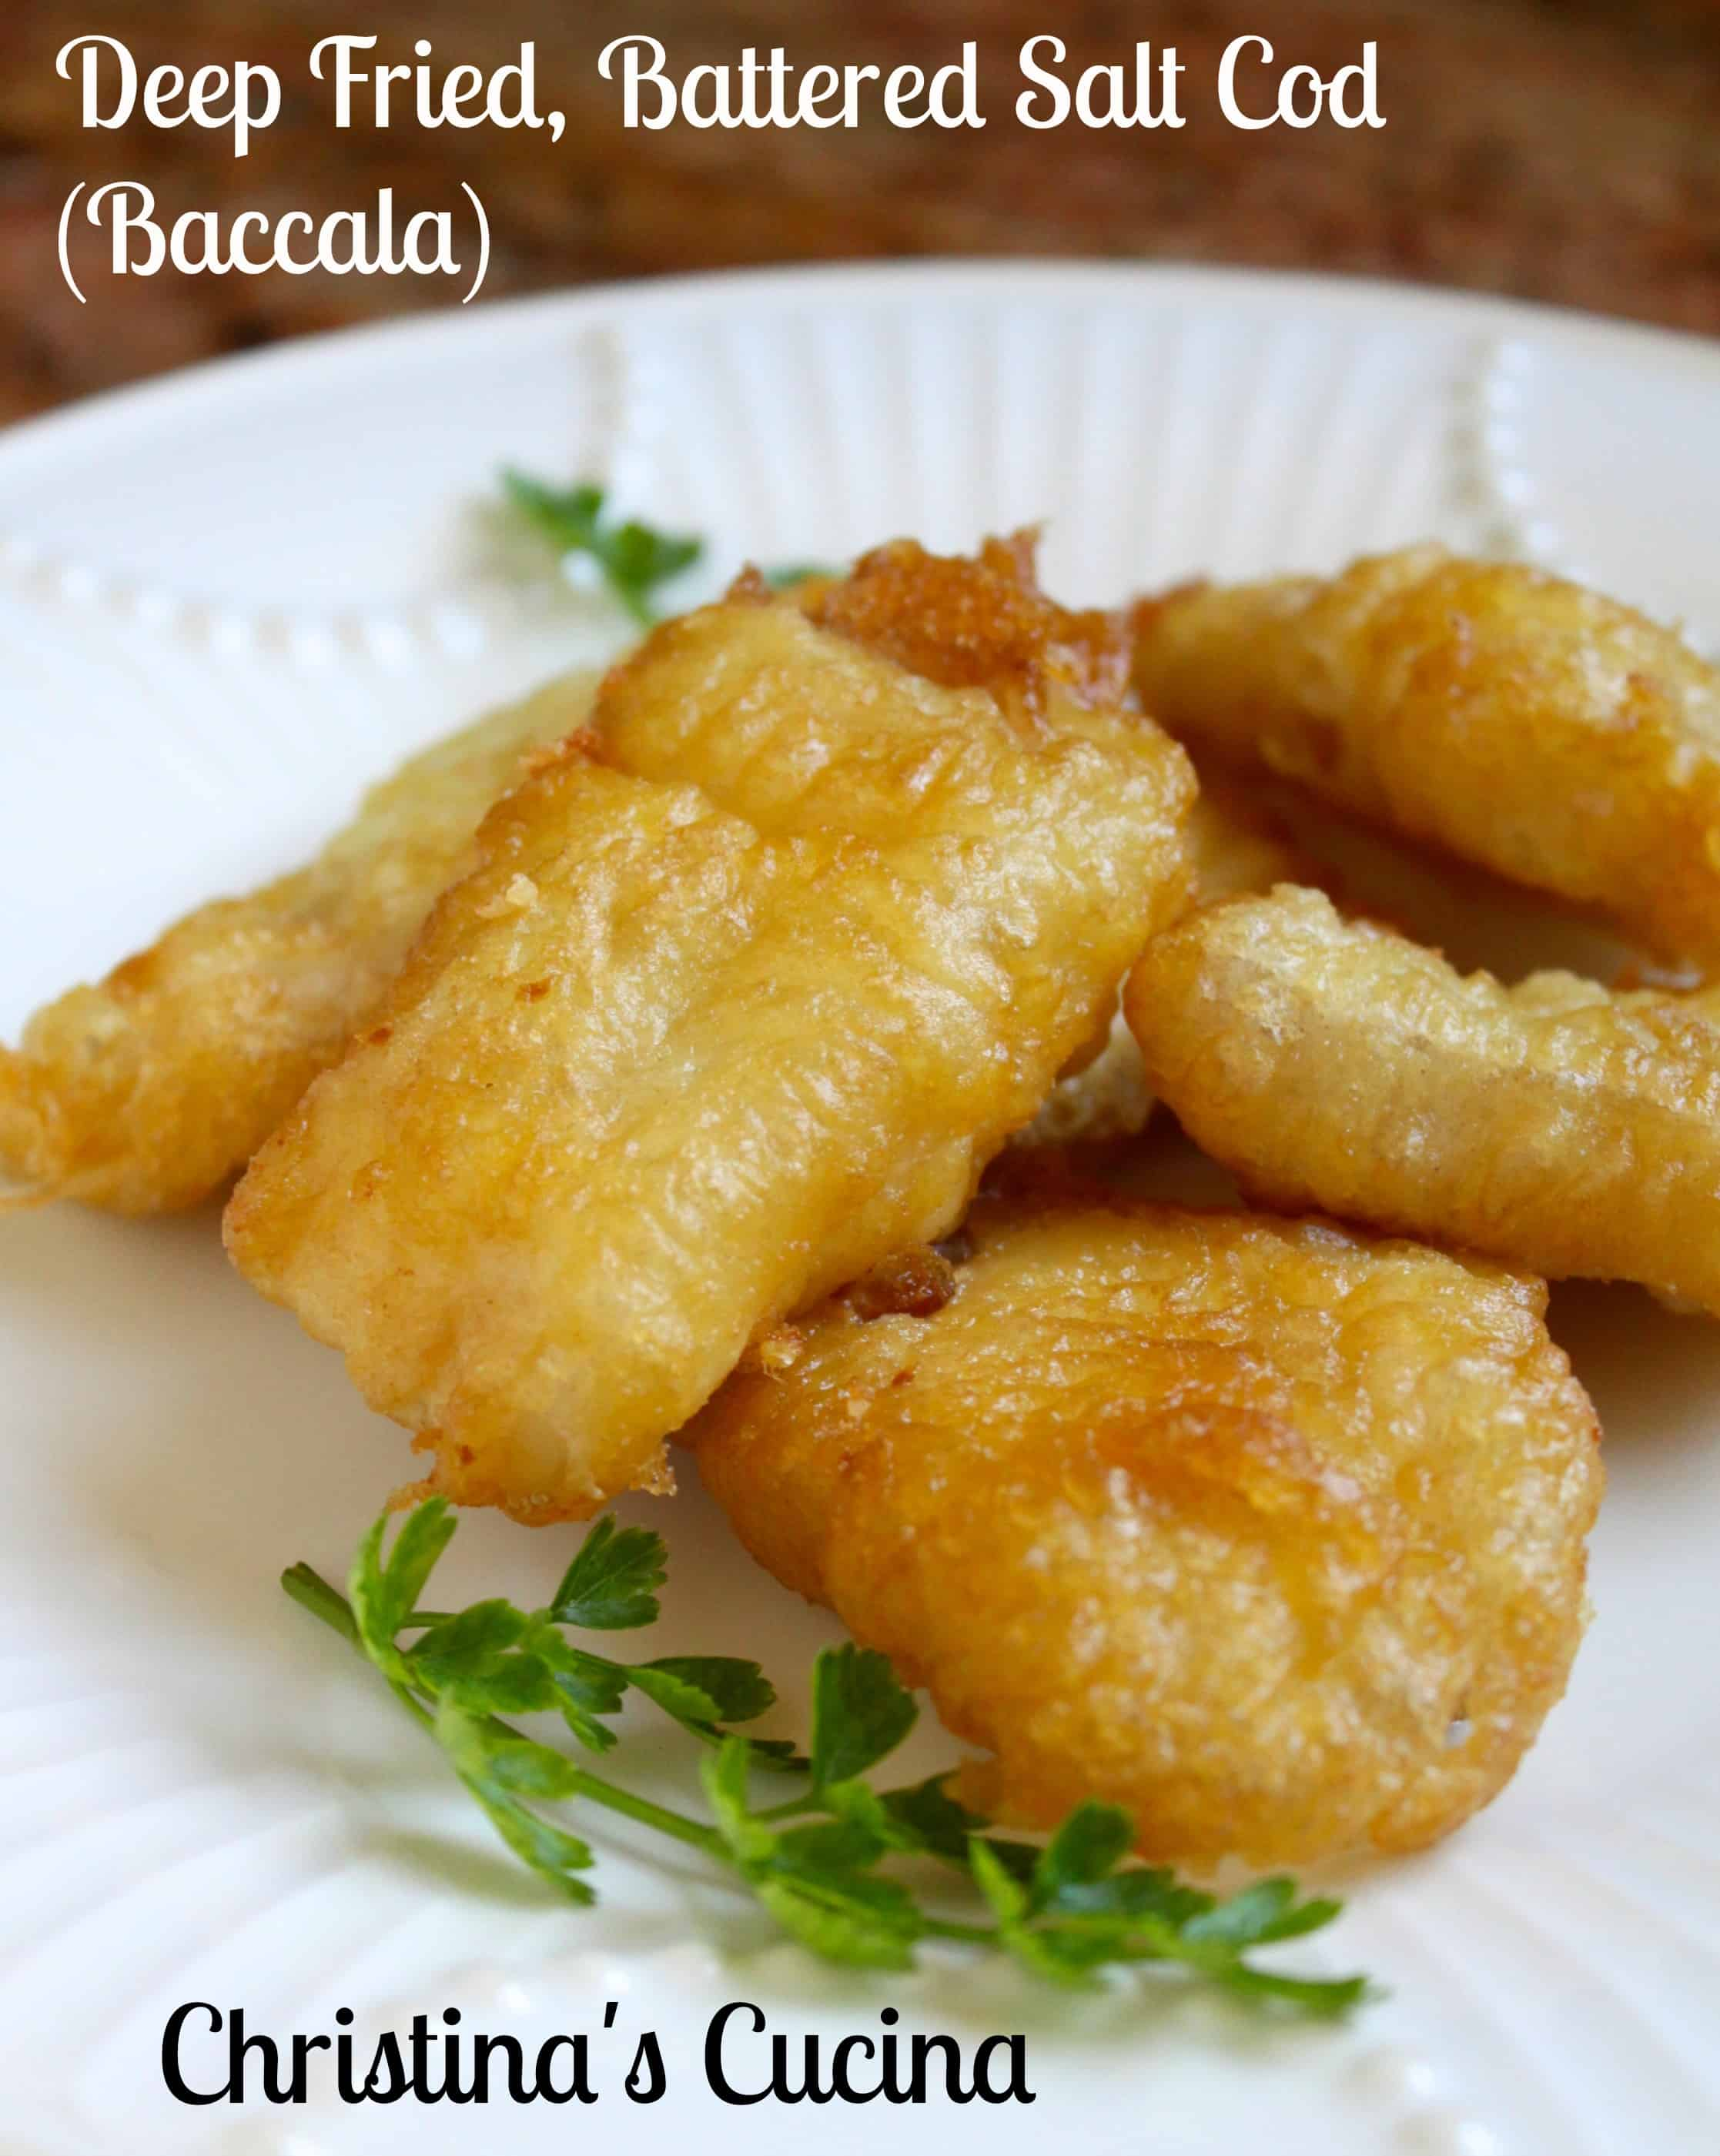 Cucina Rustica Meaning Deep Fried Battered Salt Cod Baccalà Italian Style